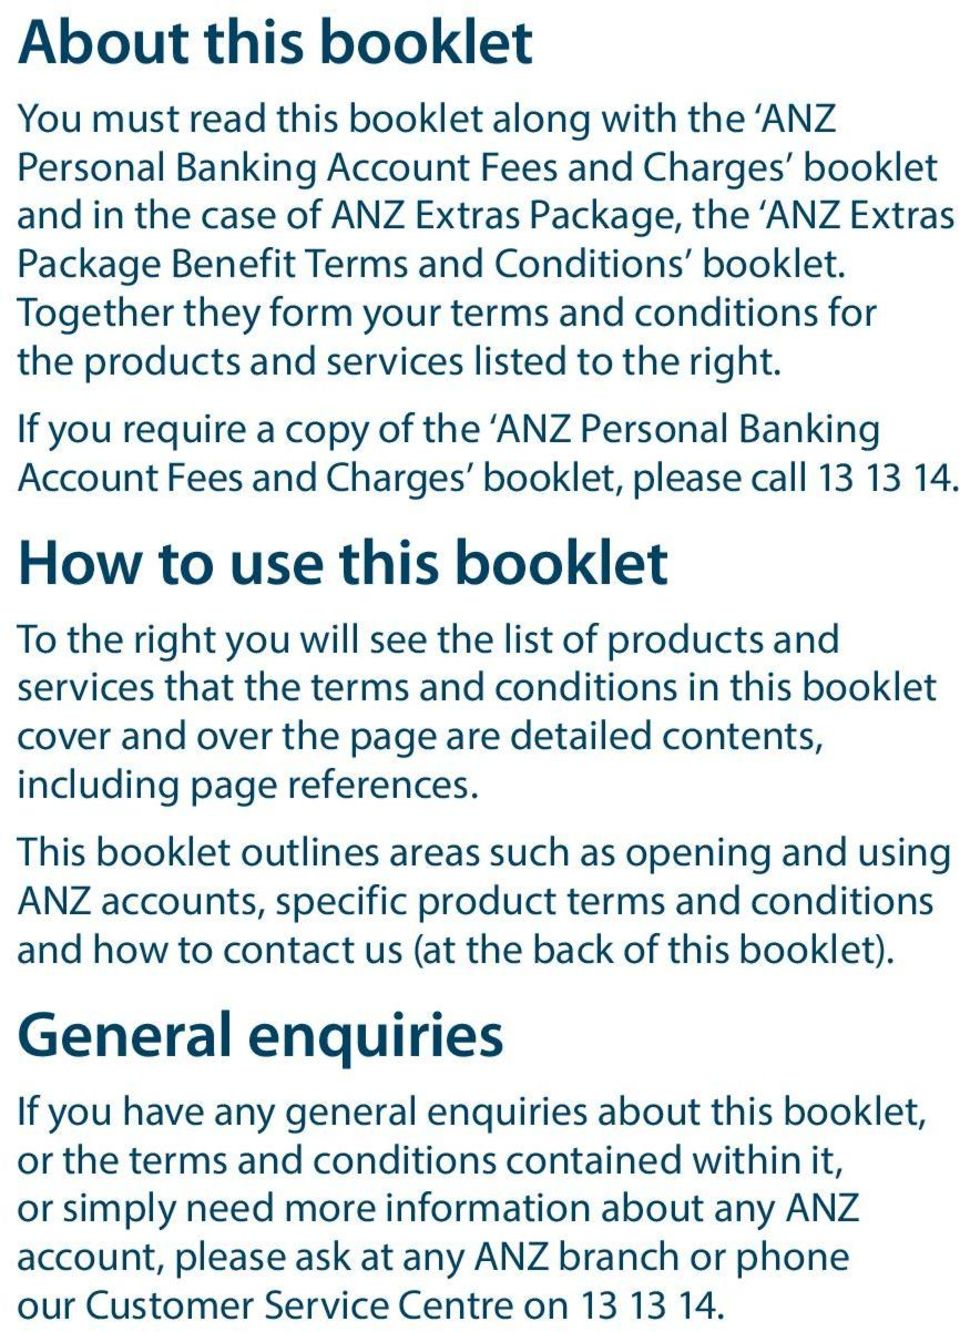 If you require a copy of the ANZ Personal Banking Account Fees and Charges booklet, please call 13 13 14.